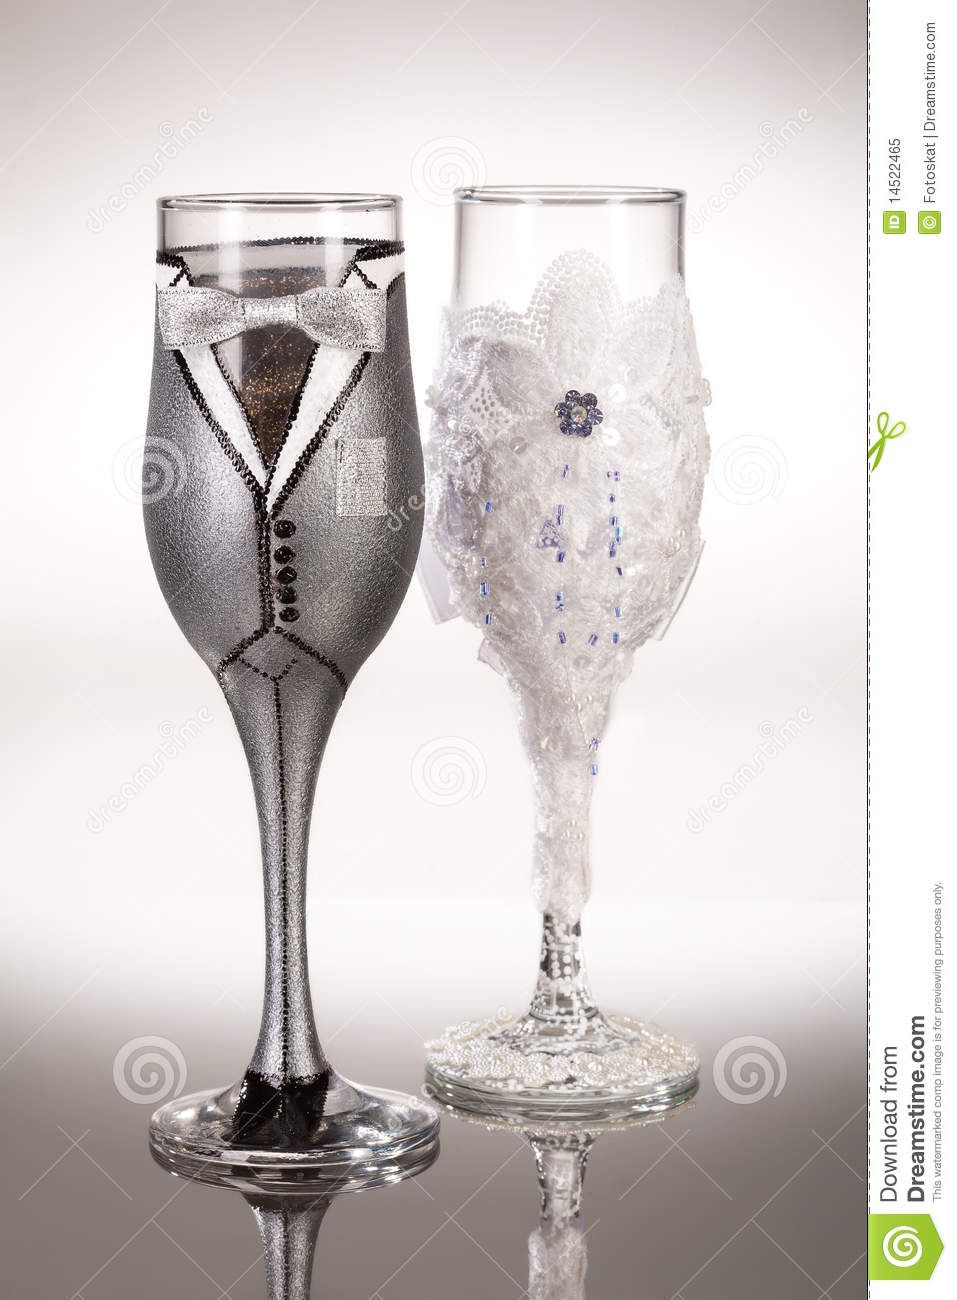 Wedding Glasses Stock Image Image Of Decor Accessories 14522465